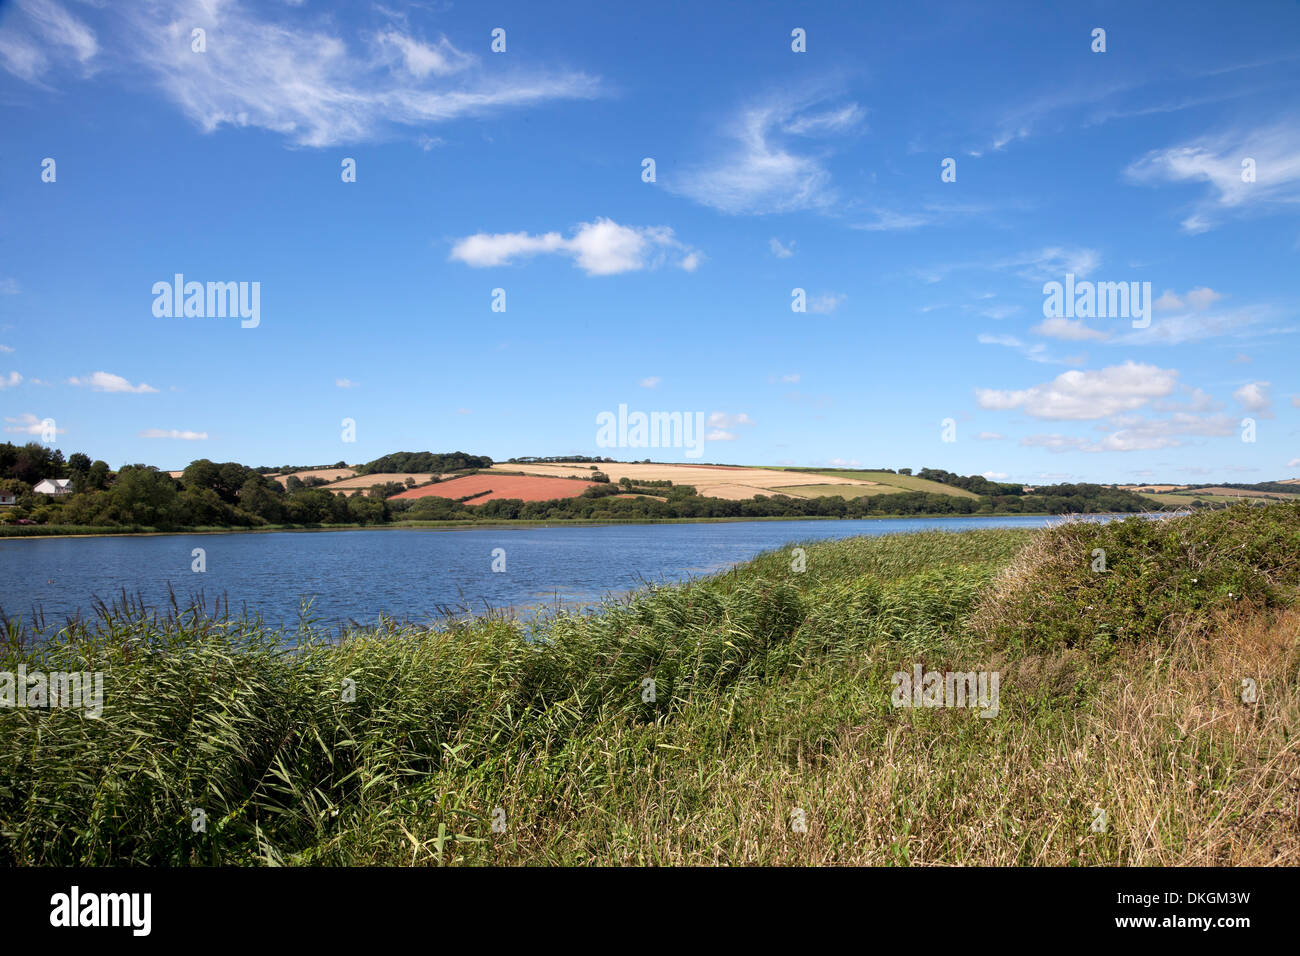 Slapton Ley, the largest freshwater lake in the south west of England, Devon. - Stock Image